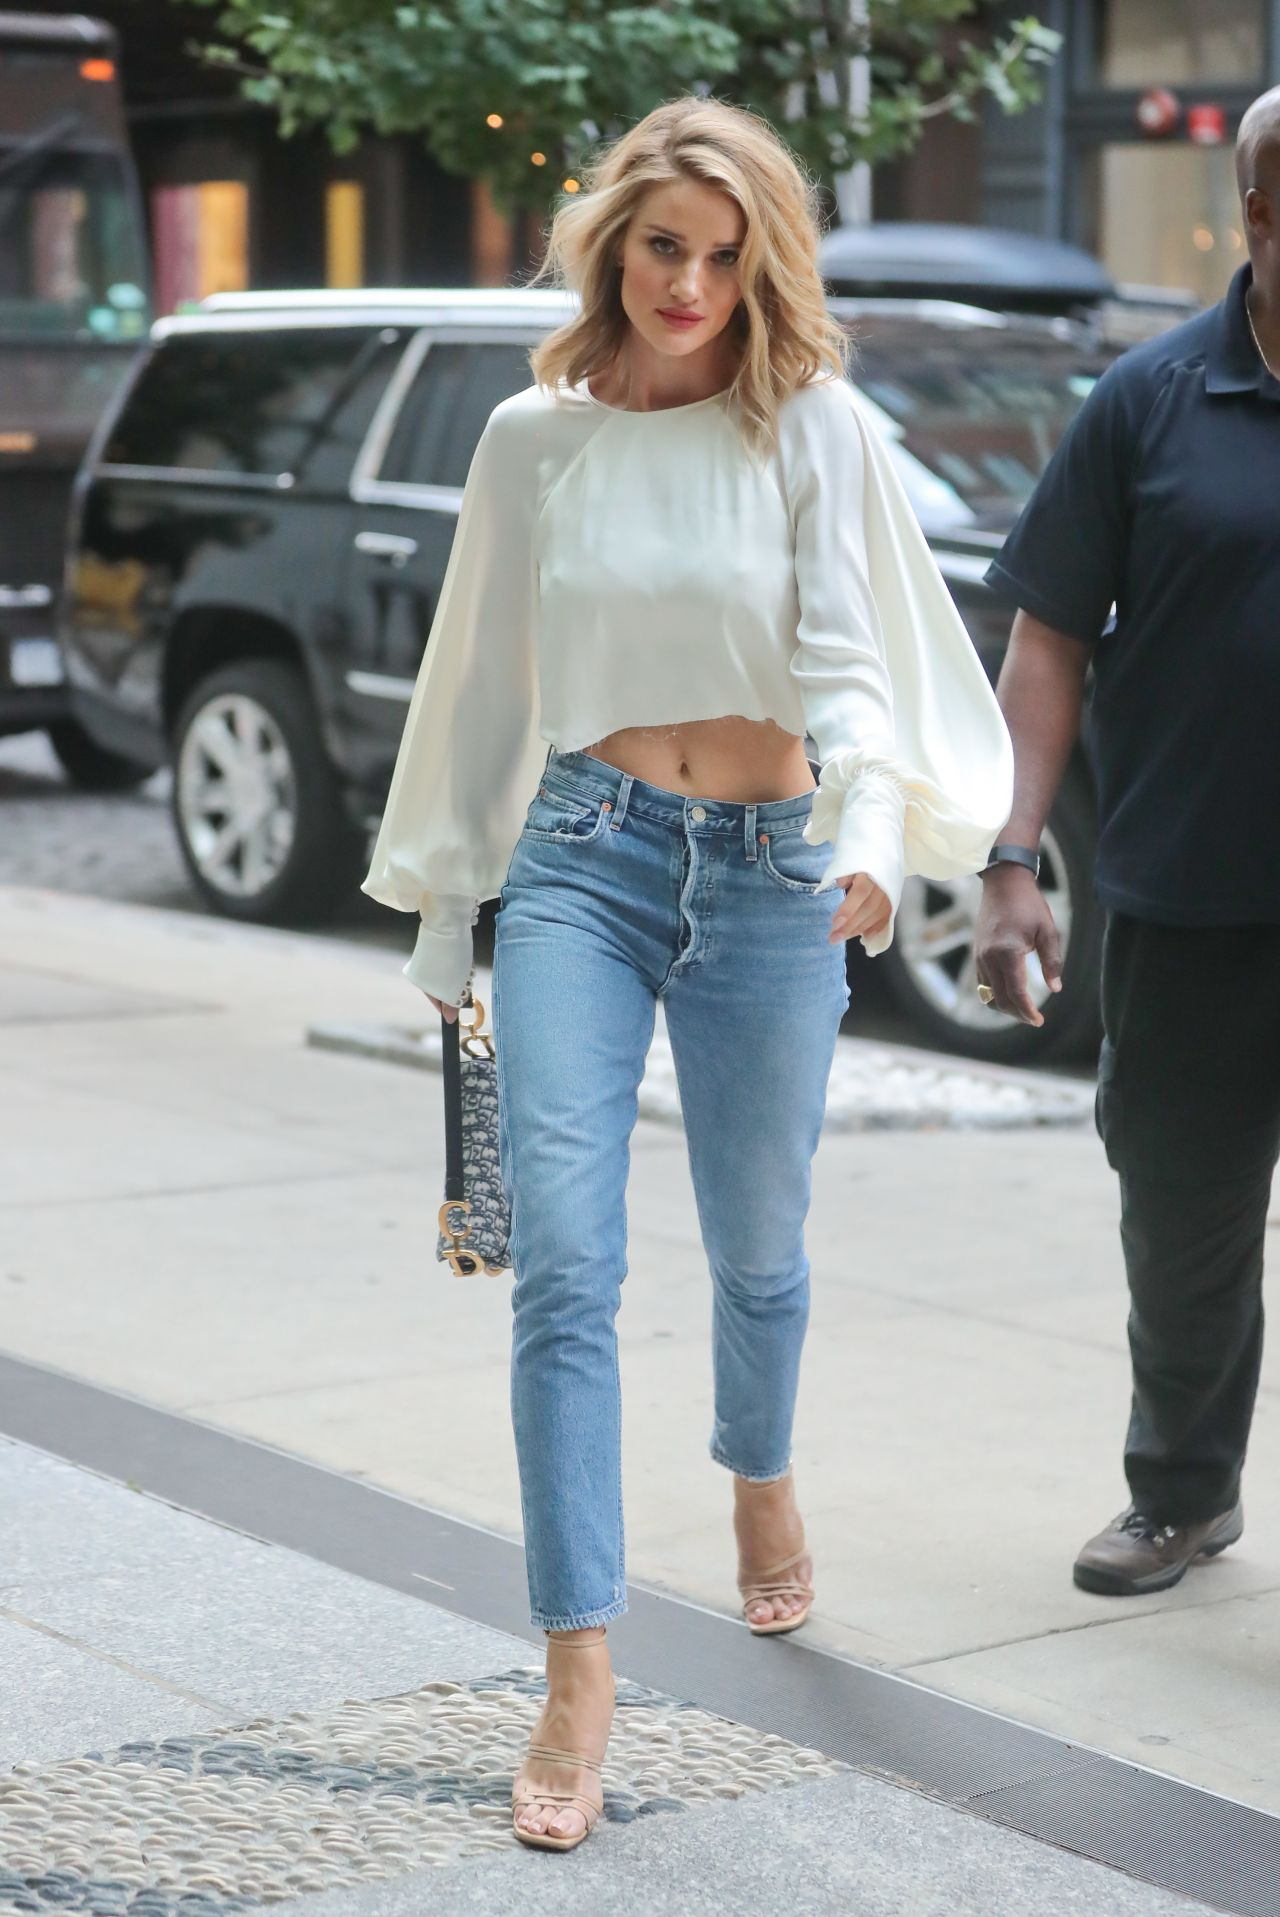 Rosie Huntington-Whiteley in a White Top and Jeans in New ...